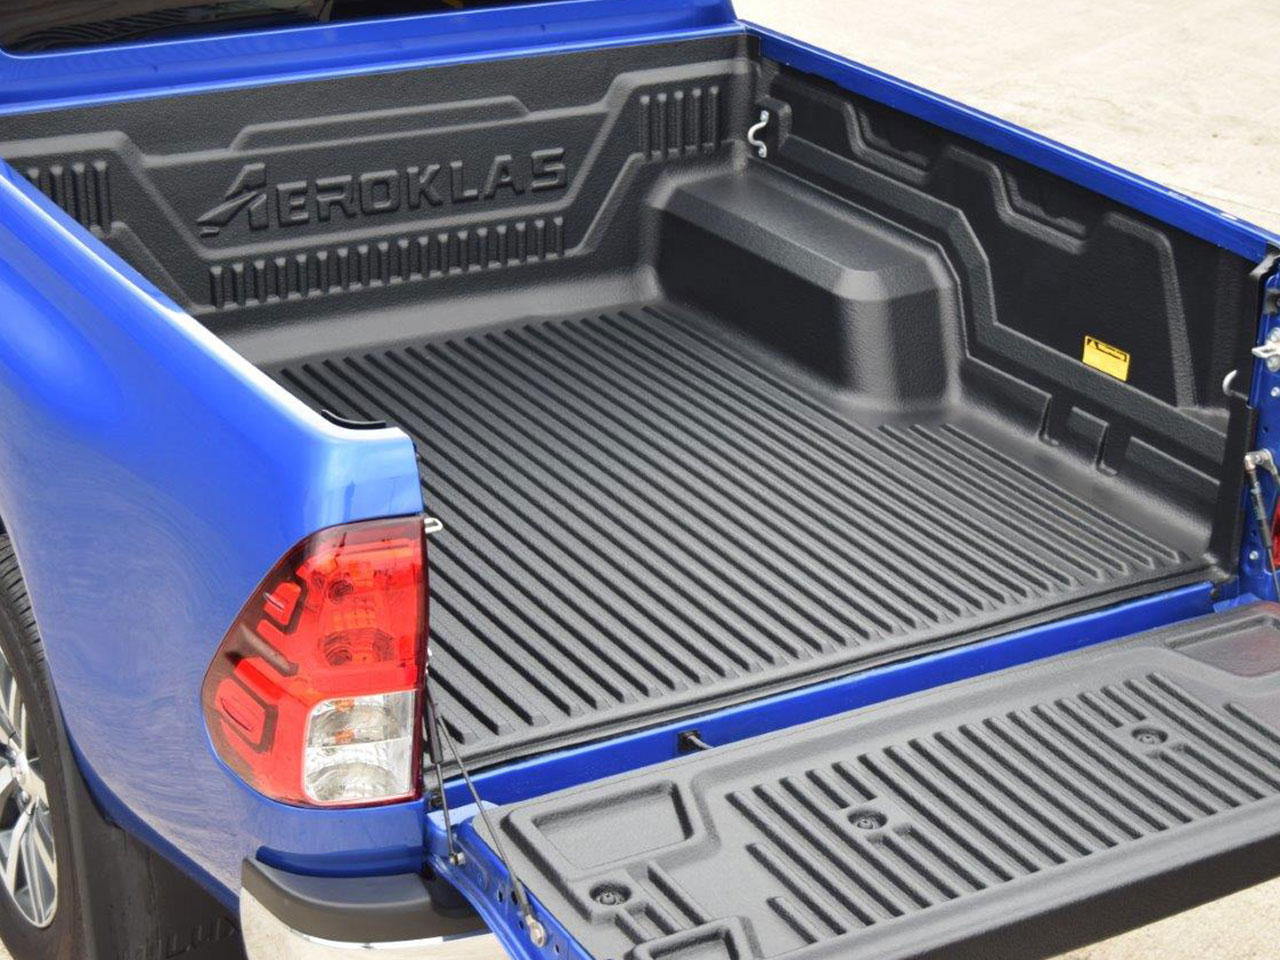 Details about Toyota Hilux Double Cab 2016 on Aeroklas Under Rail Bed Liner